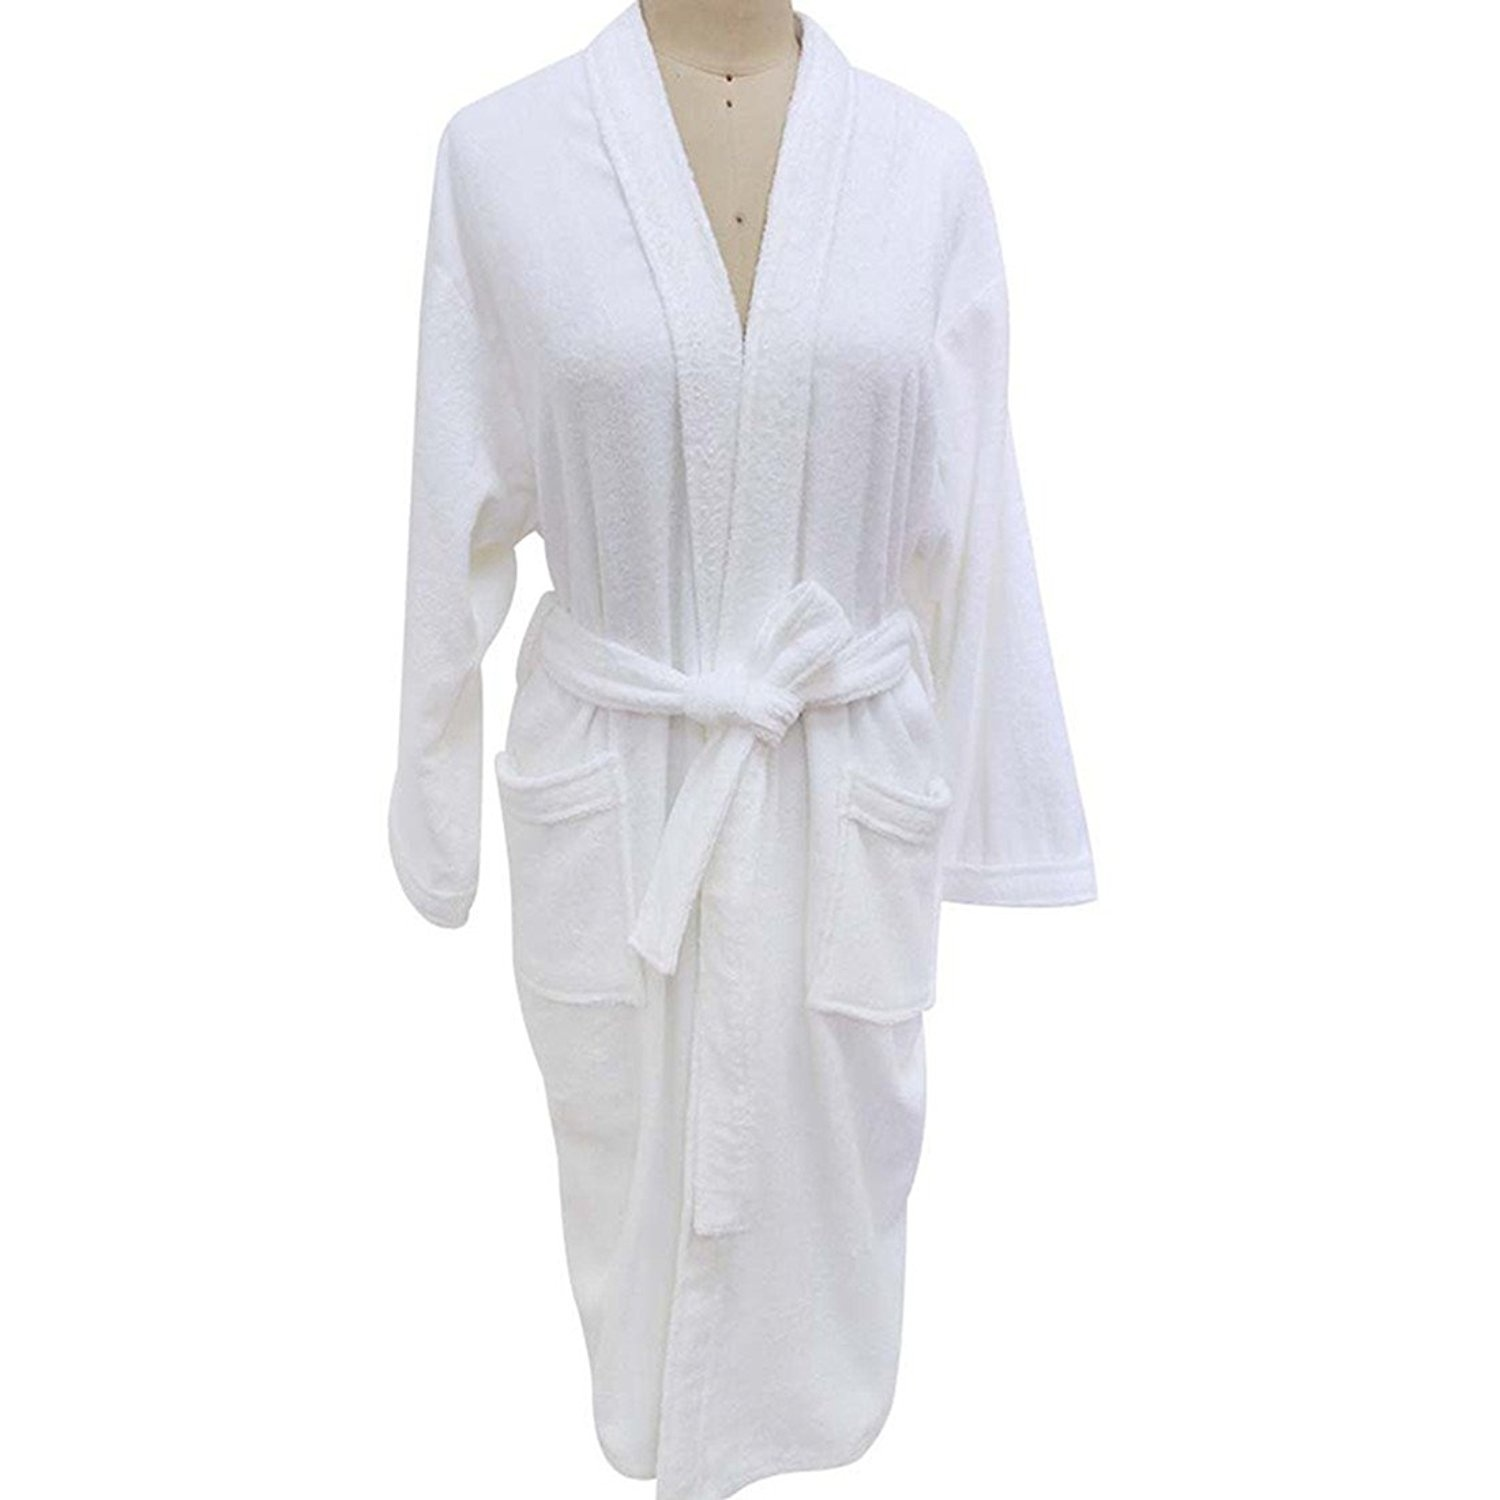 Unisex Towelling Robe 100% Cotton Terry Towel Bathrobe Dressing Gown Bath  Robe Perfect for Gym Shower Spa Hotel Robe Holiday Present or Christmas  Gift by ... 9de0fca37